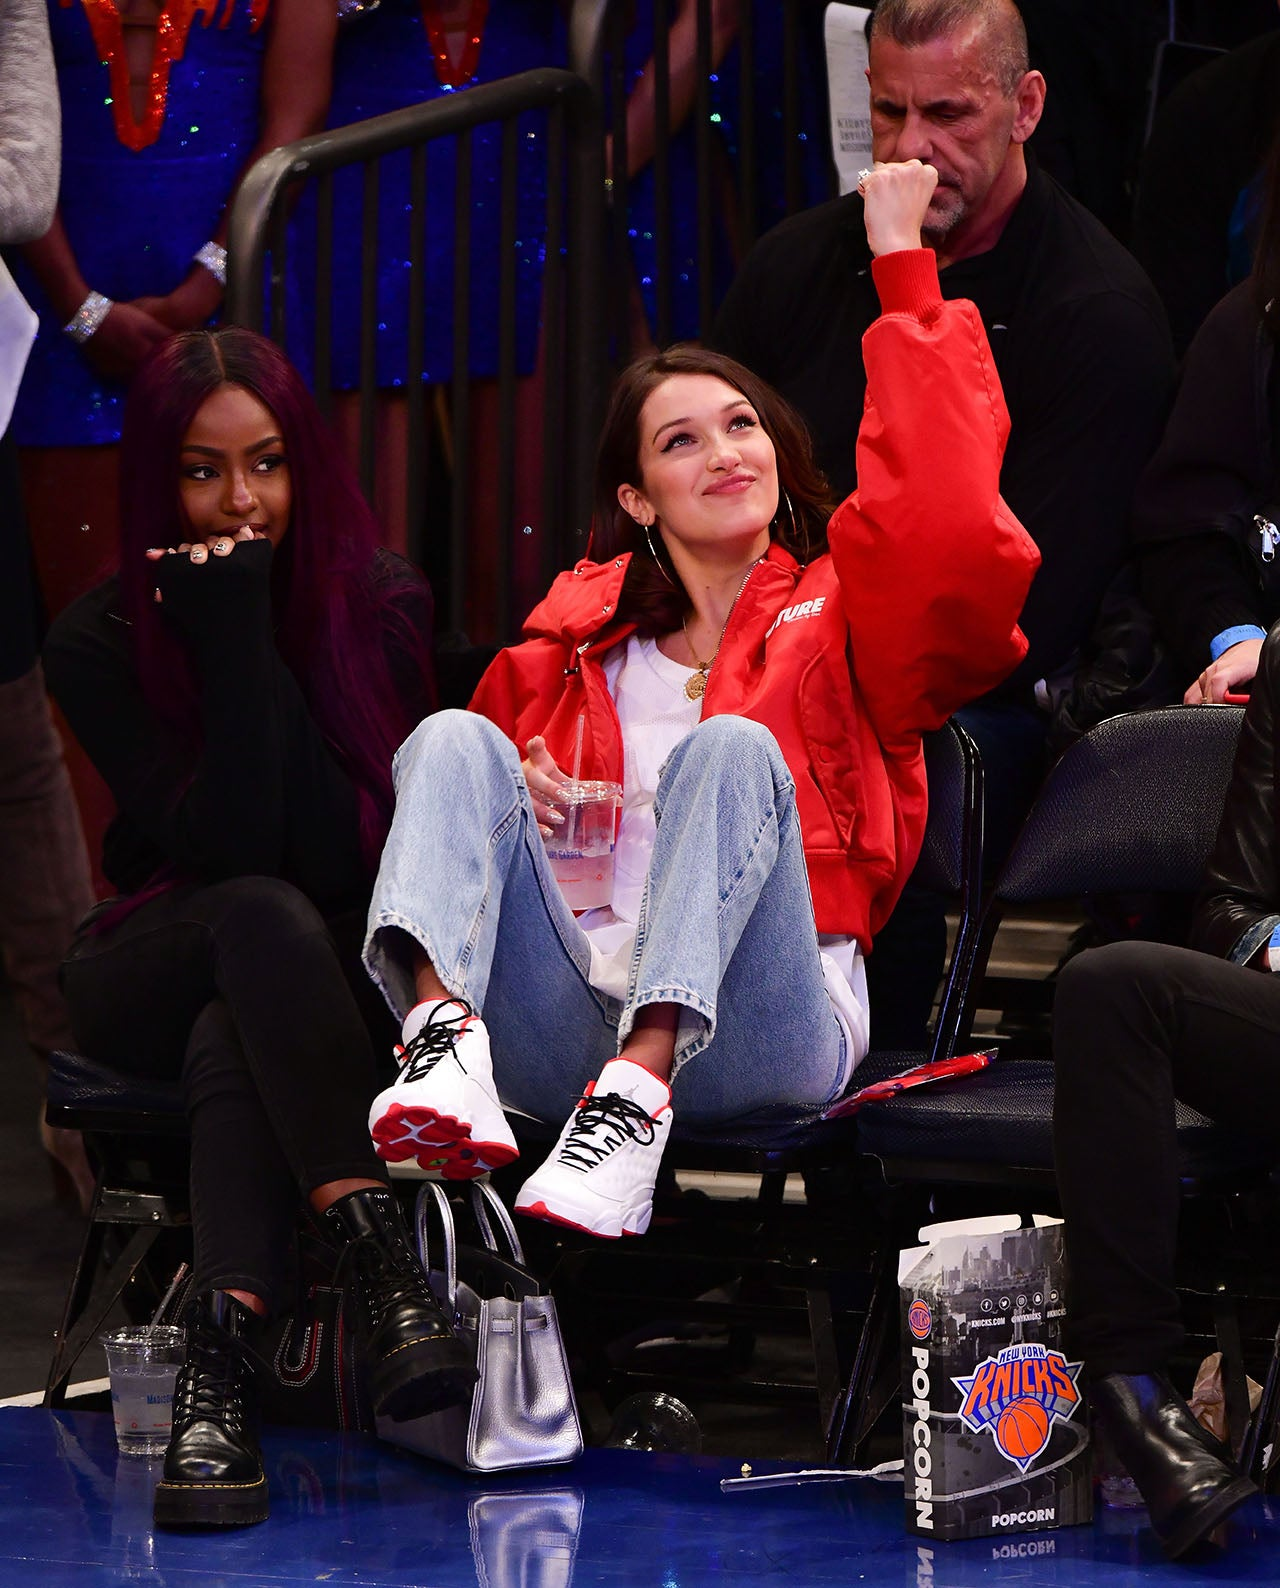 Bella Hadids Hilarious Courtside Facial Expressions Are